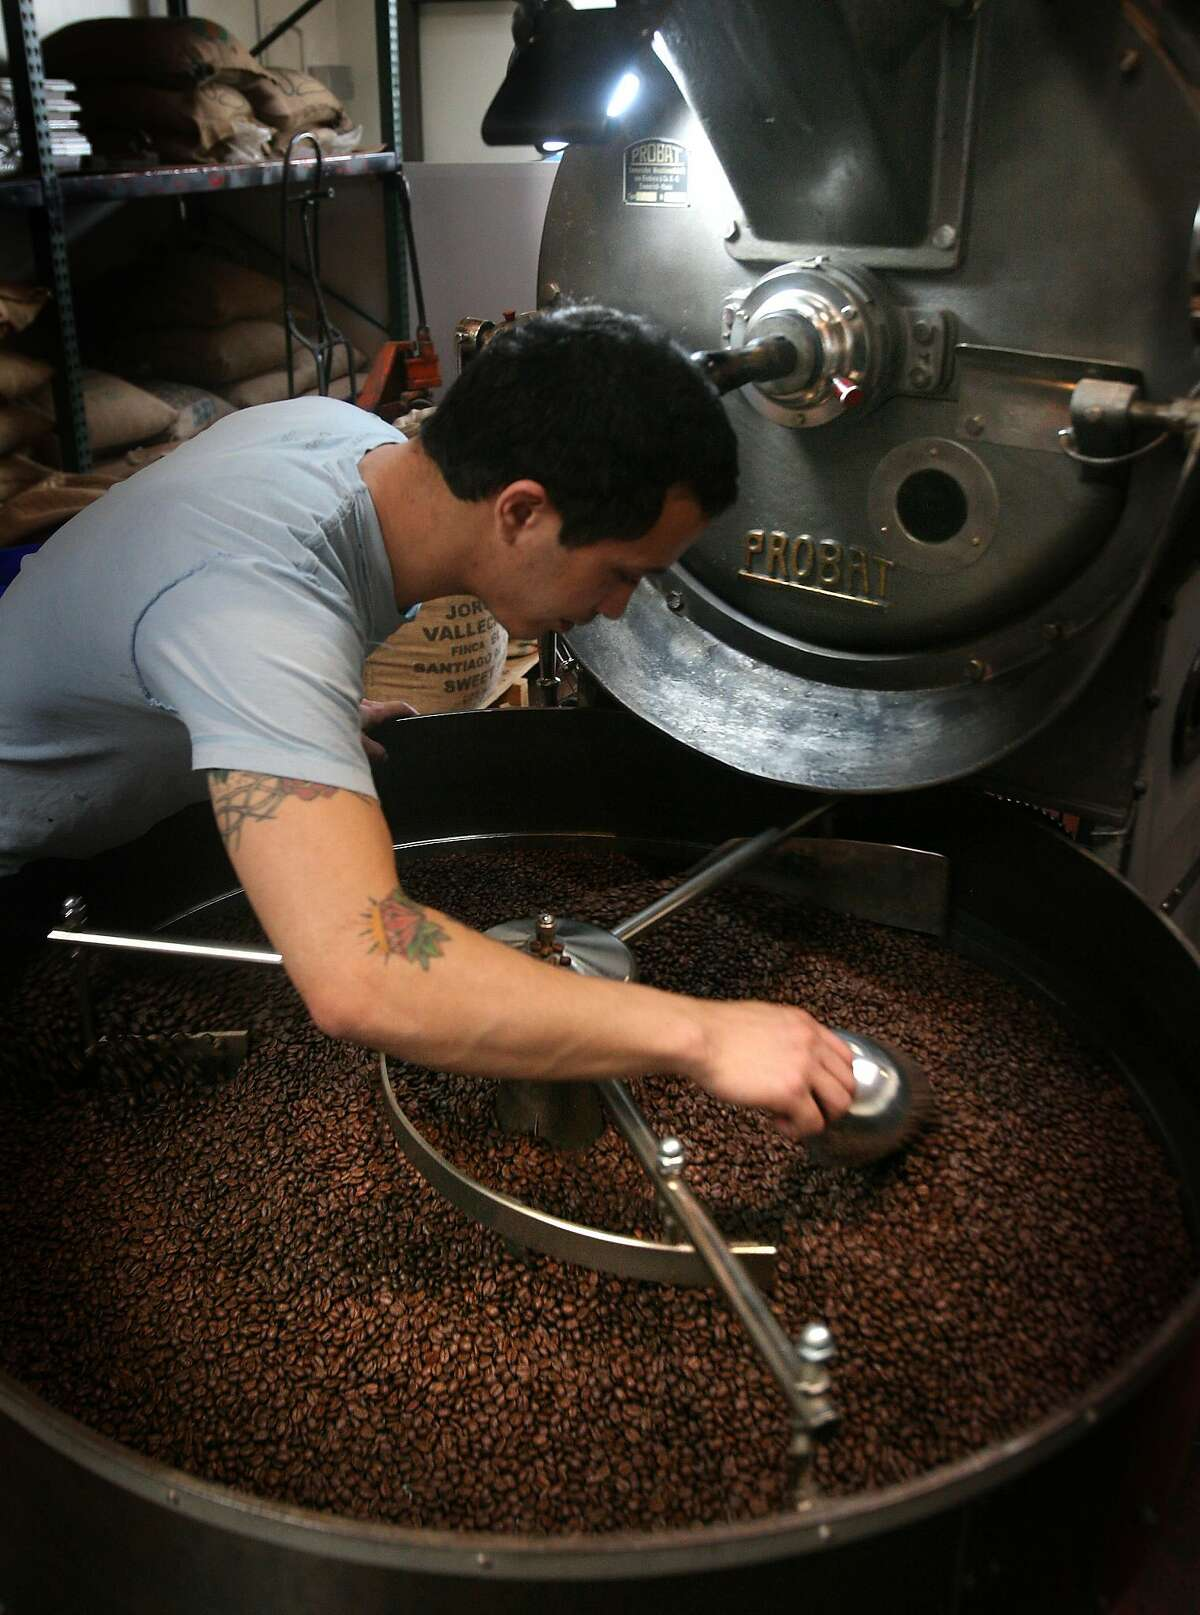 Jeremy Tooker inspects a batch of coffee he's roasting at Four Barrel Coffee, a coffee house in San Francisco, Calif. on Tuesday, March 3, 2009.